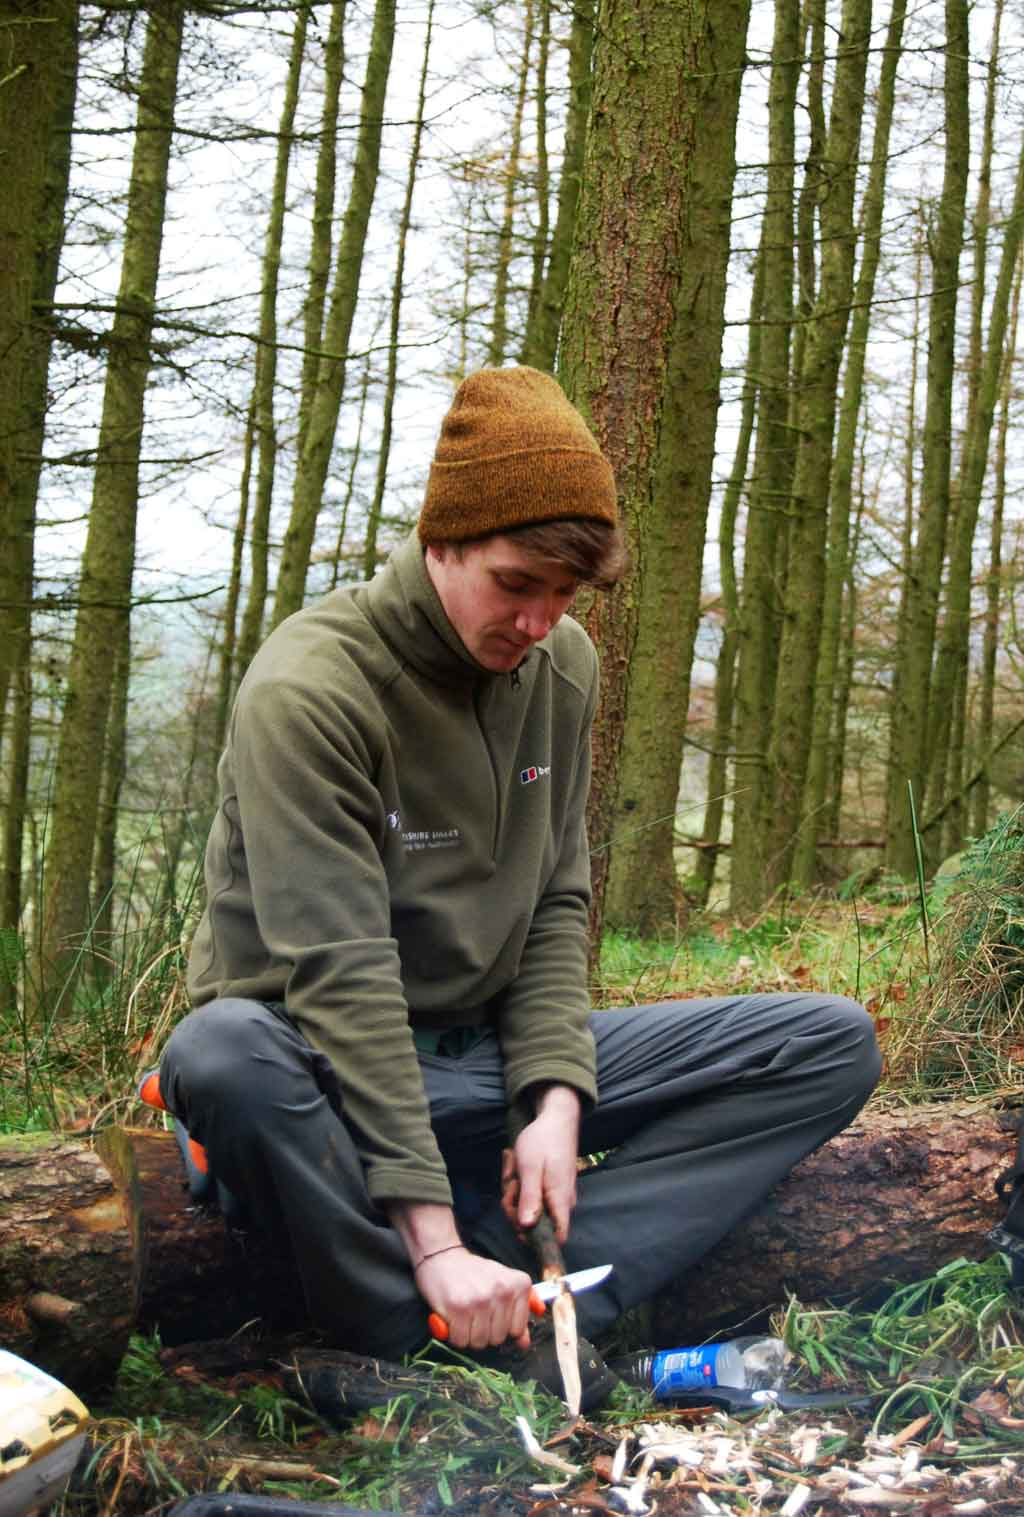 Environmental apprentices learn woodland skills